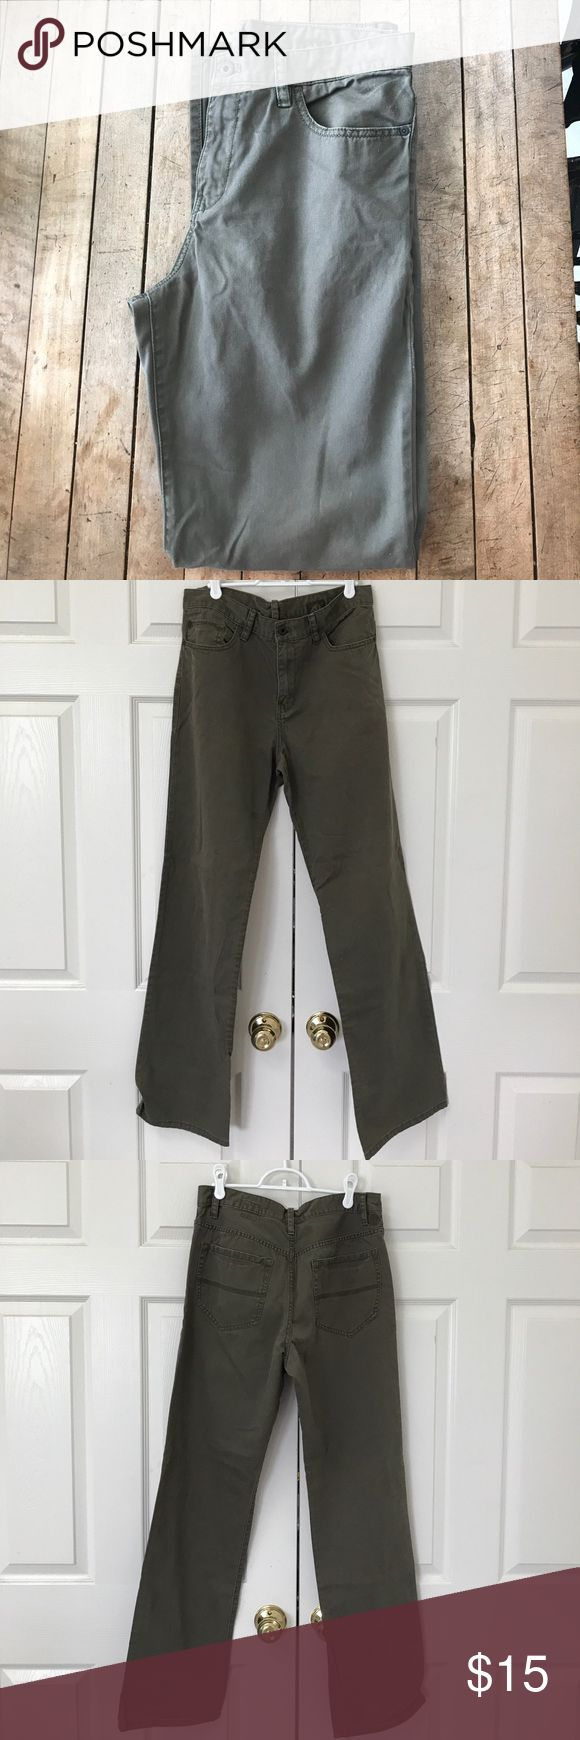 Men's Olive Green Timberland Khaki Pants Great condition! Can be worn dress up or casually. Looser fit. Size 32 waist / 34 length. Timberland Pants Chinos & Khakis